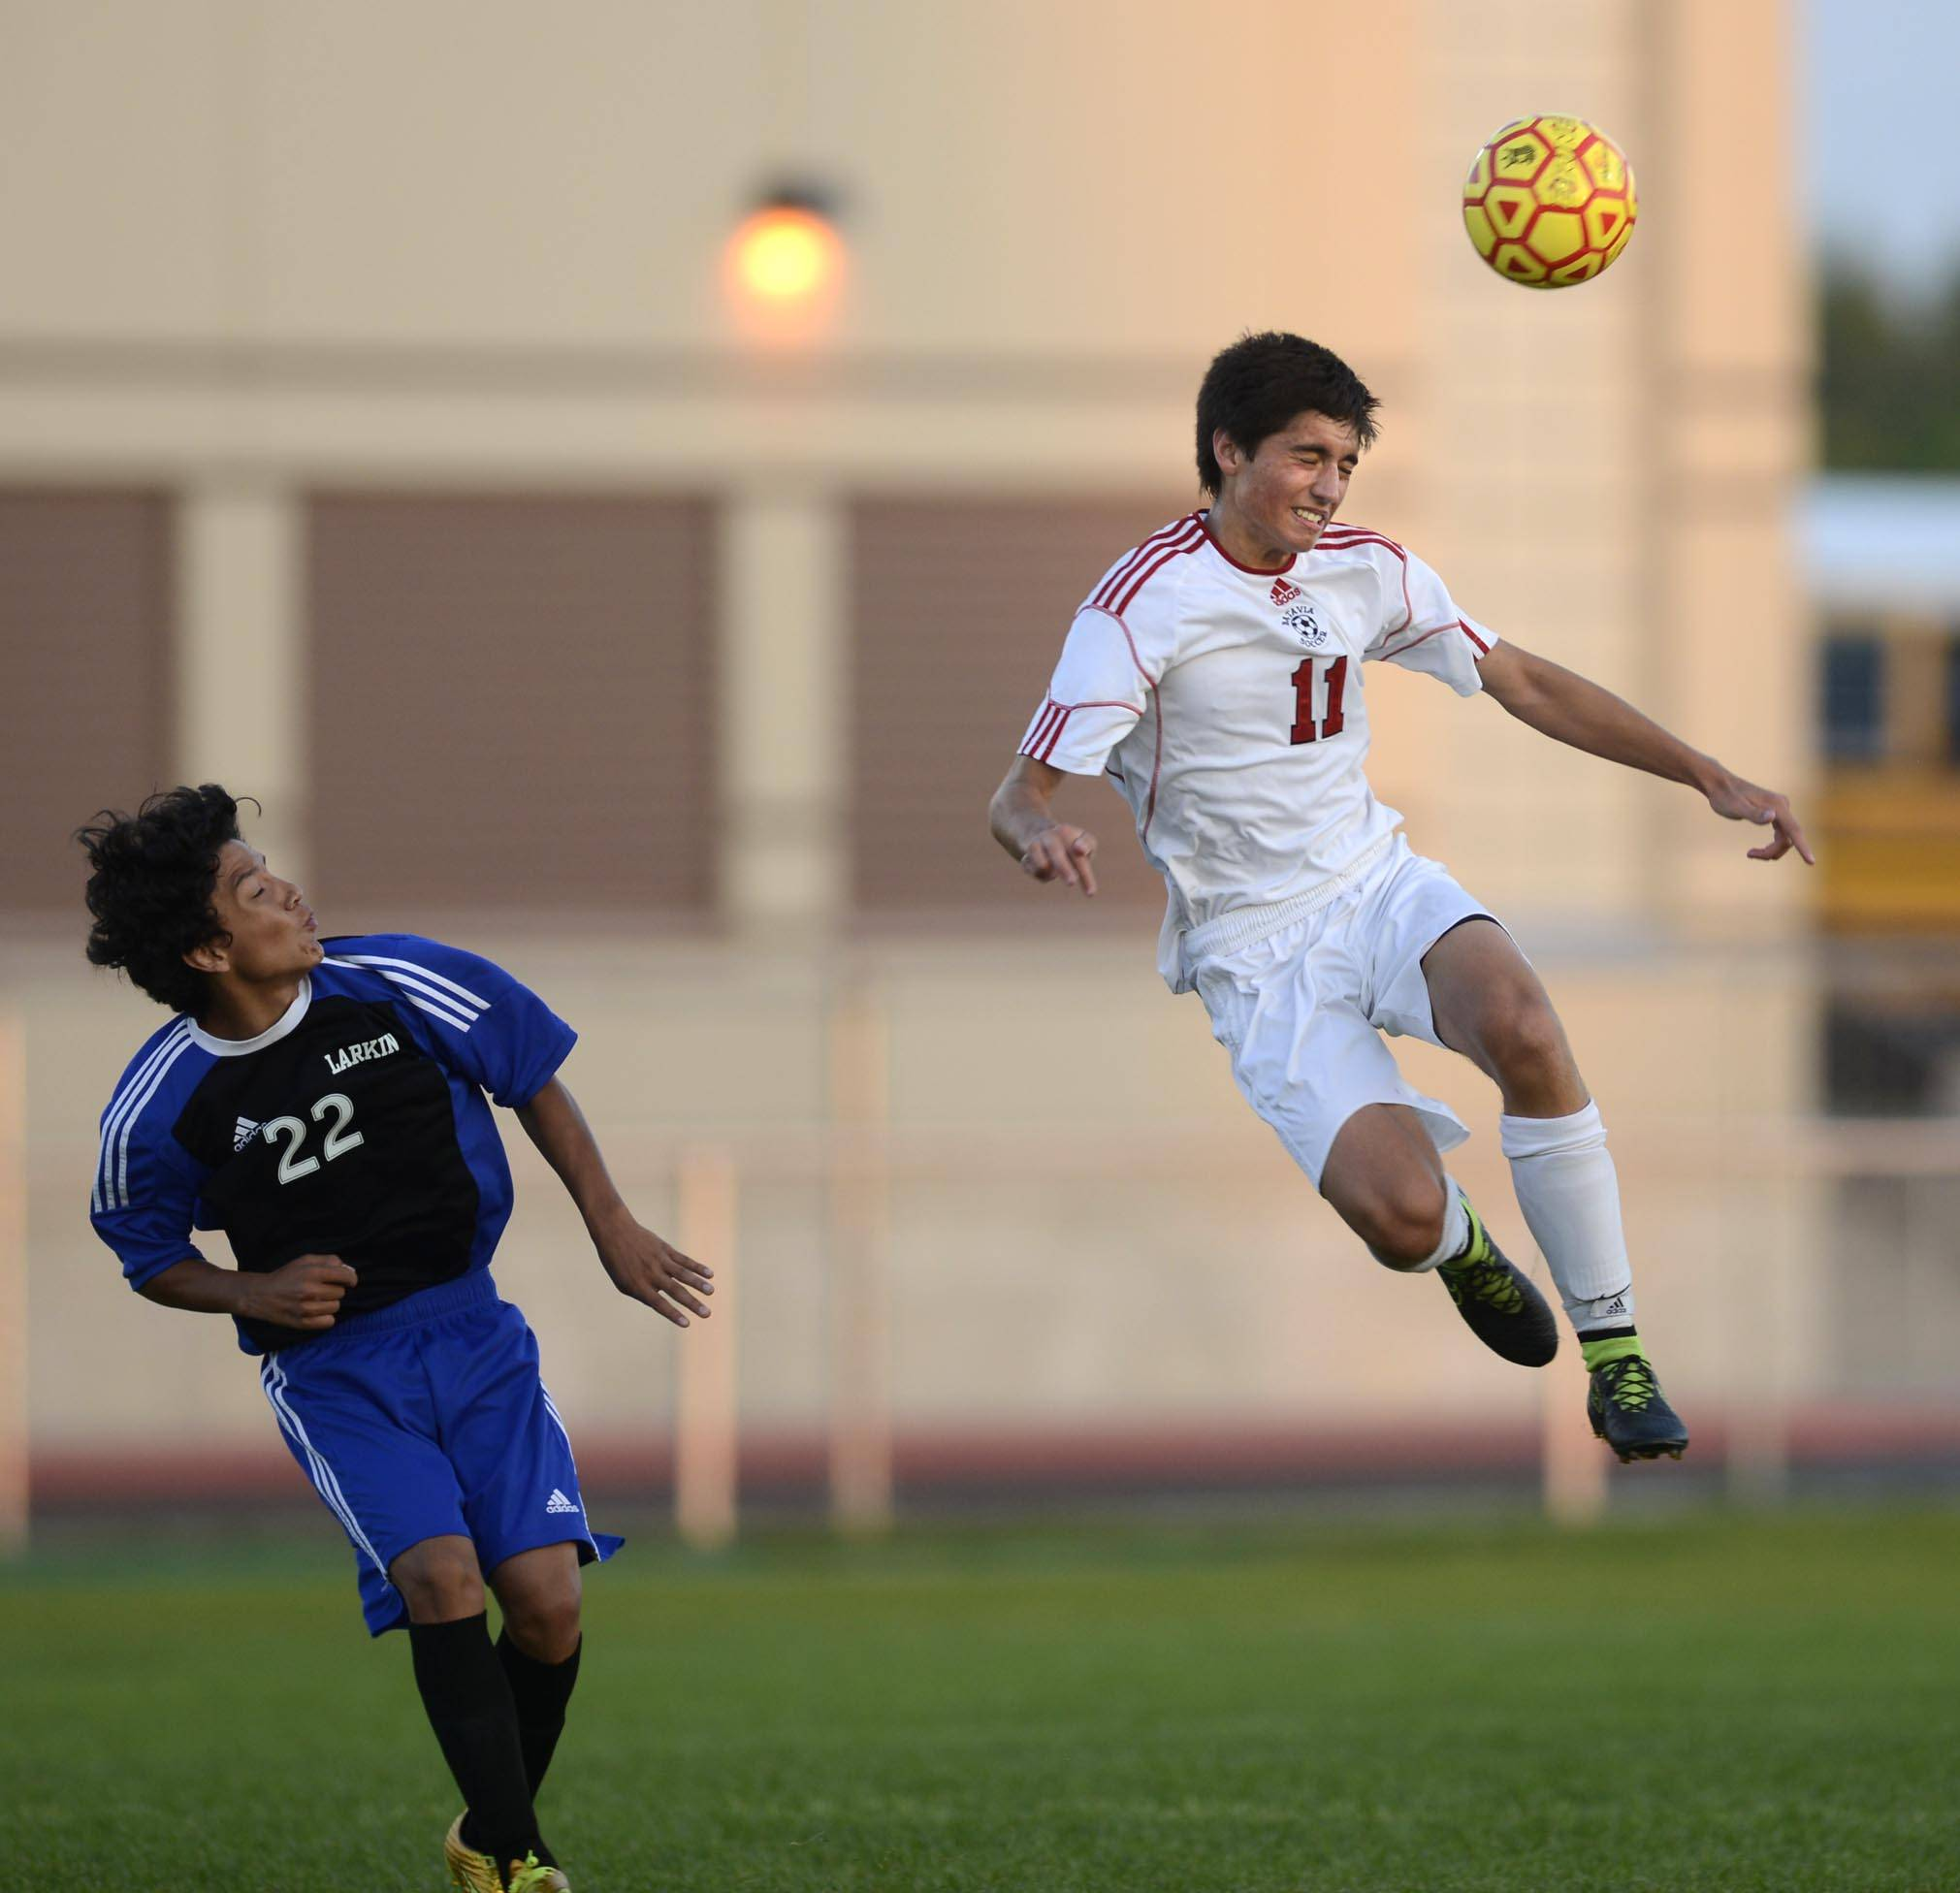 Batavia's Luke Laurich jumps to take a header in front of Larkin's Sammy Rodriguez Thursday in Batavia.